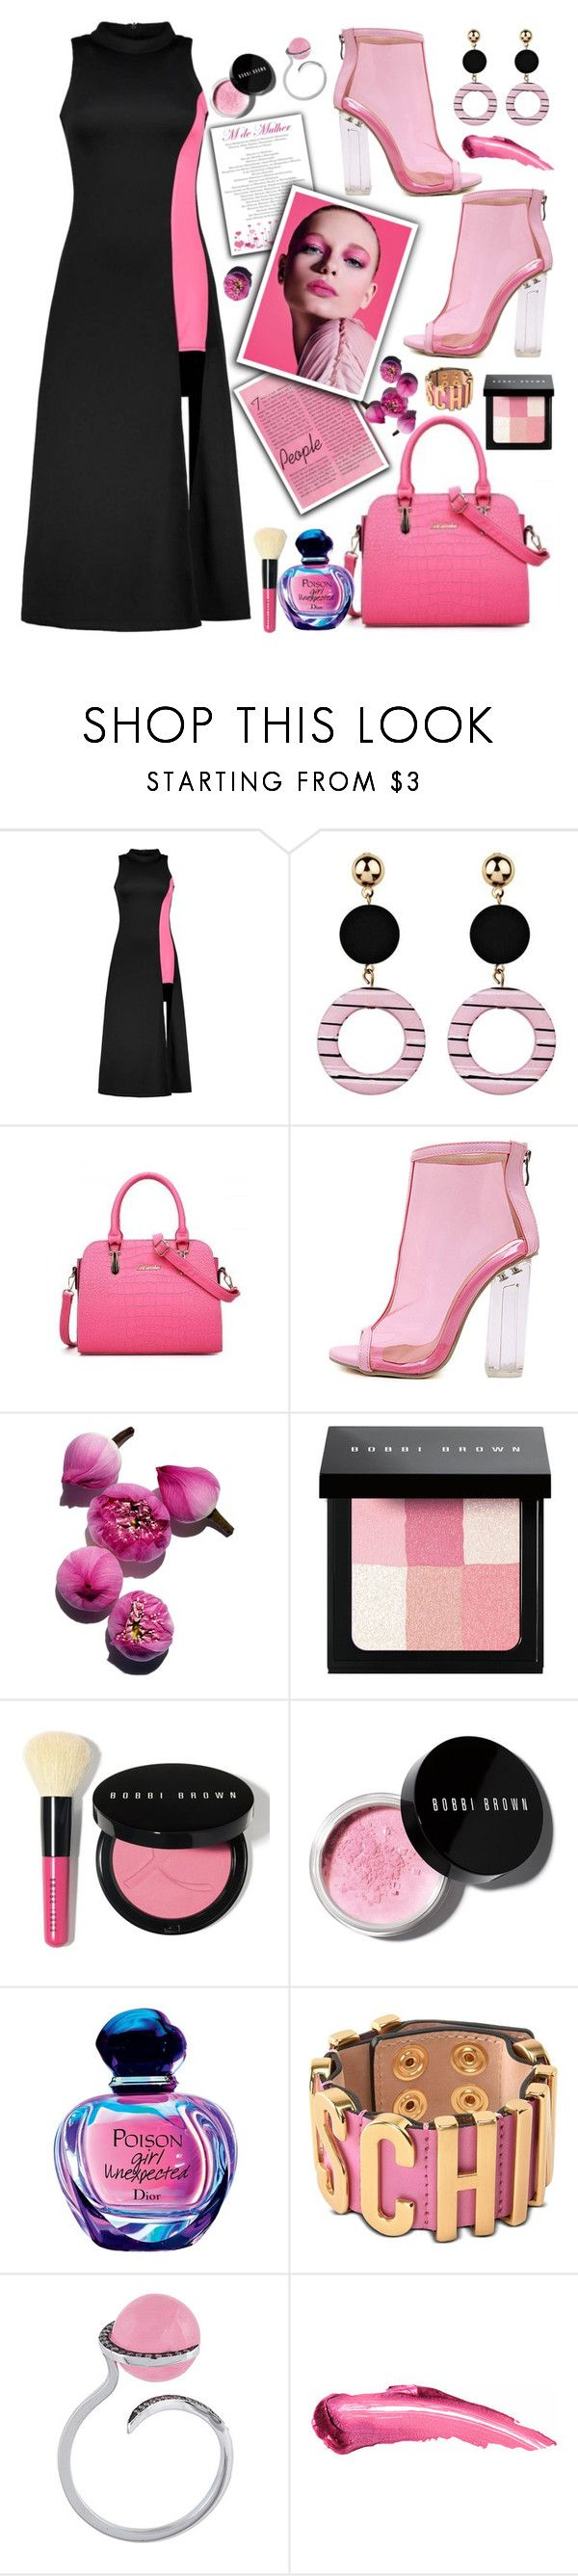 """""""ootd 43"""" by teto000 ❤ liked on Polyvore featuring WithChic, Bobbi Brown Cosmetics, Moschino, Christina Debs, outfit and ootd"""